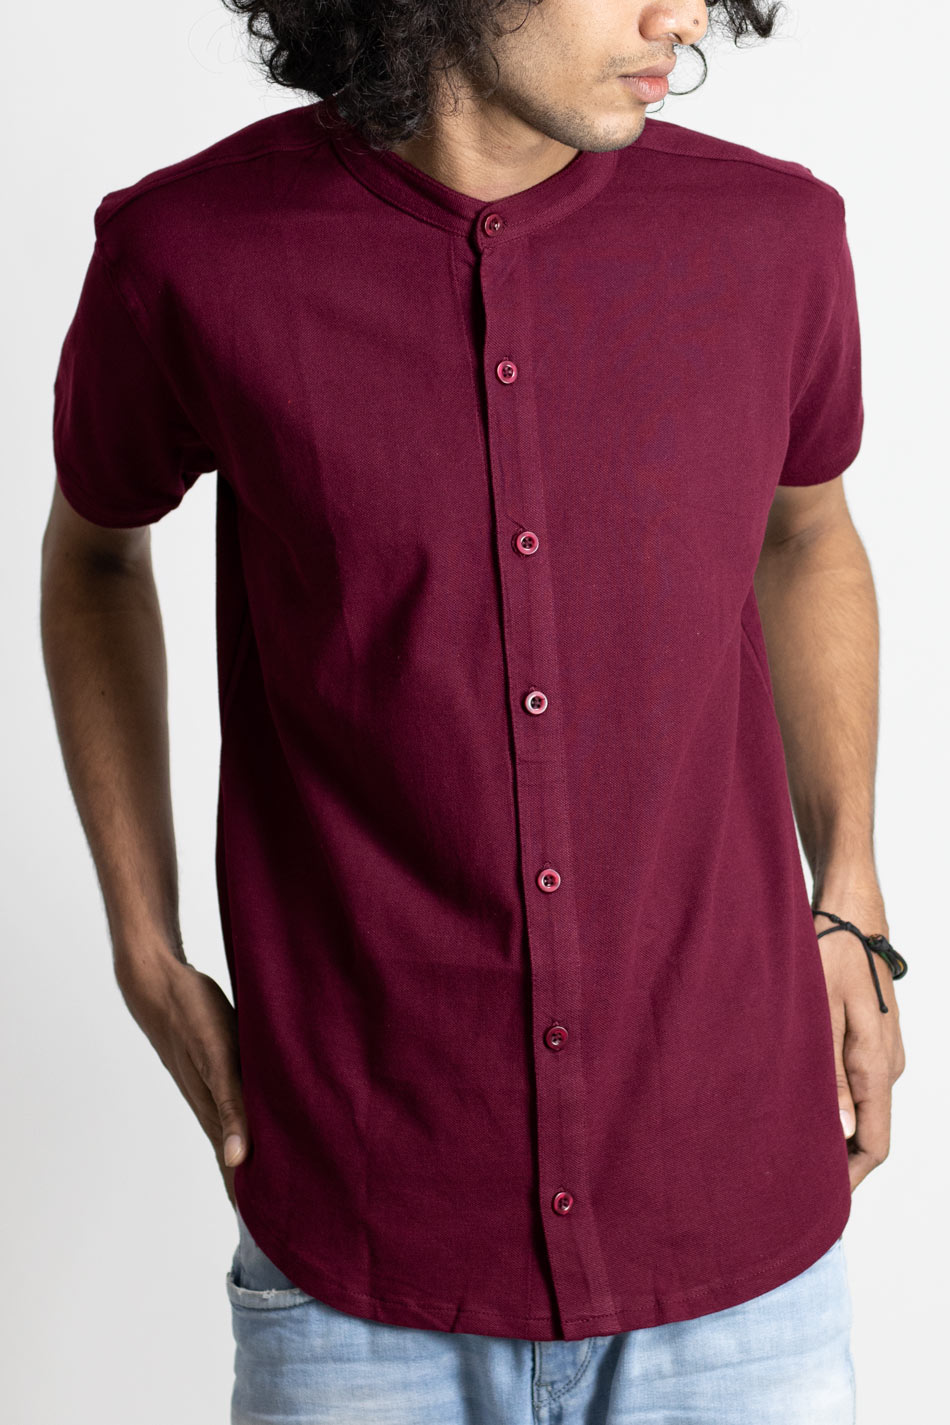 Cotton maroon shirt for men